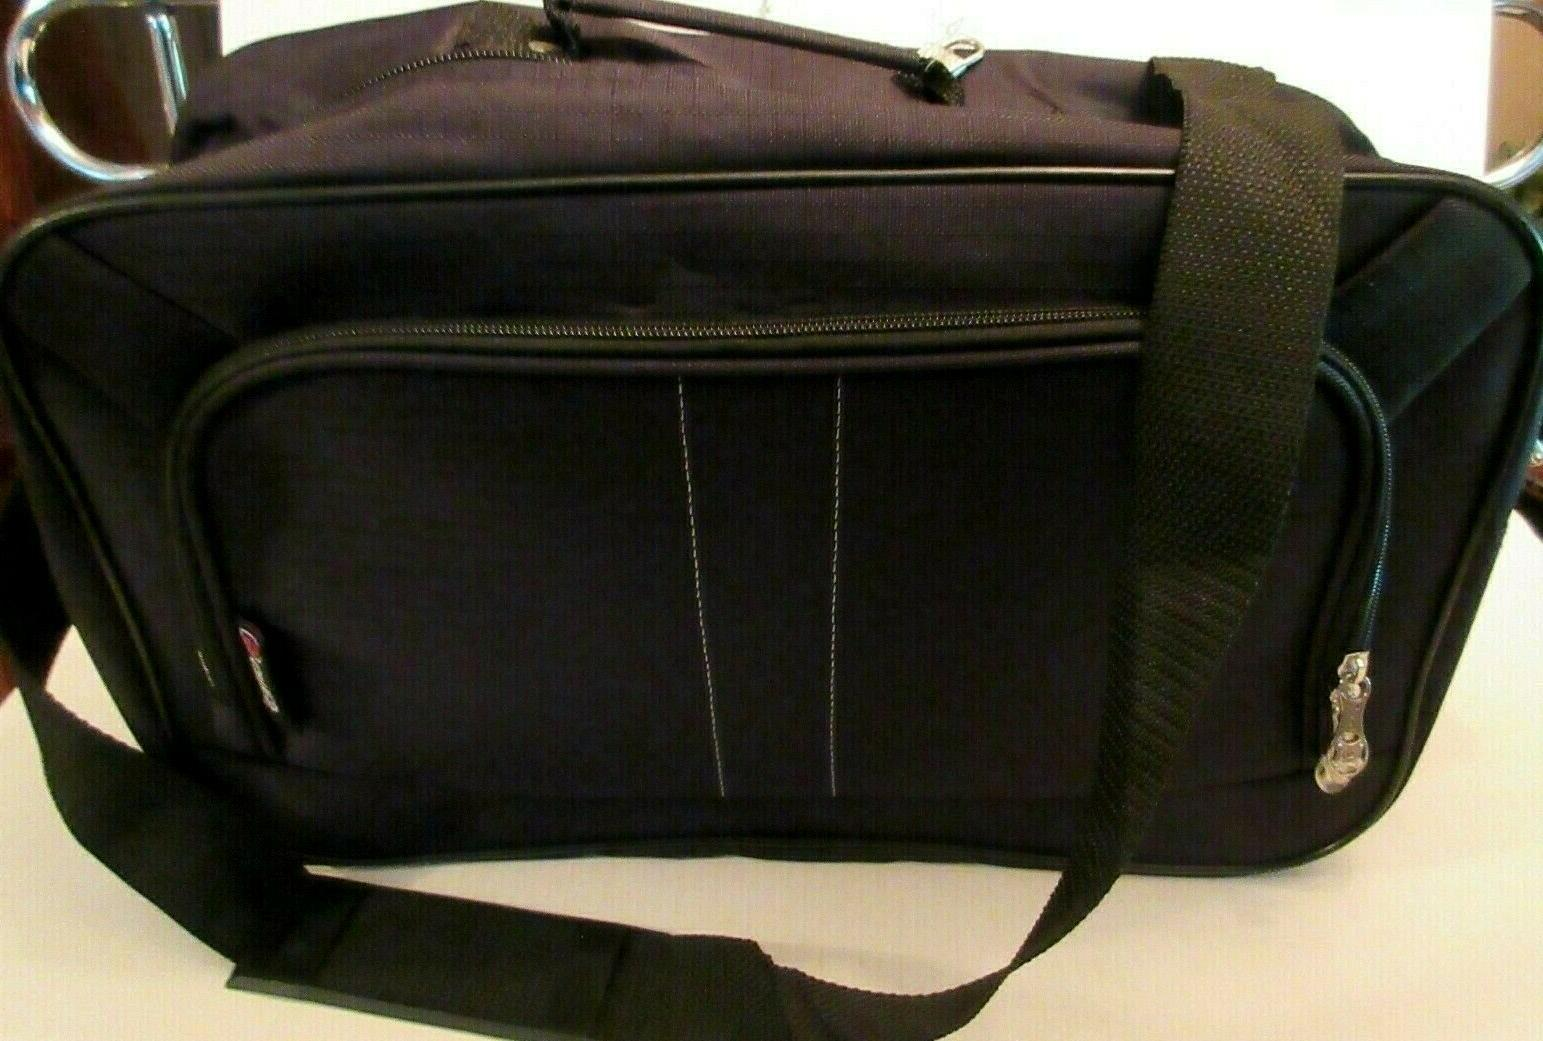 barcelona cabin friendly luggage bag carry on